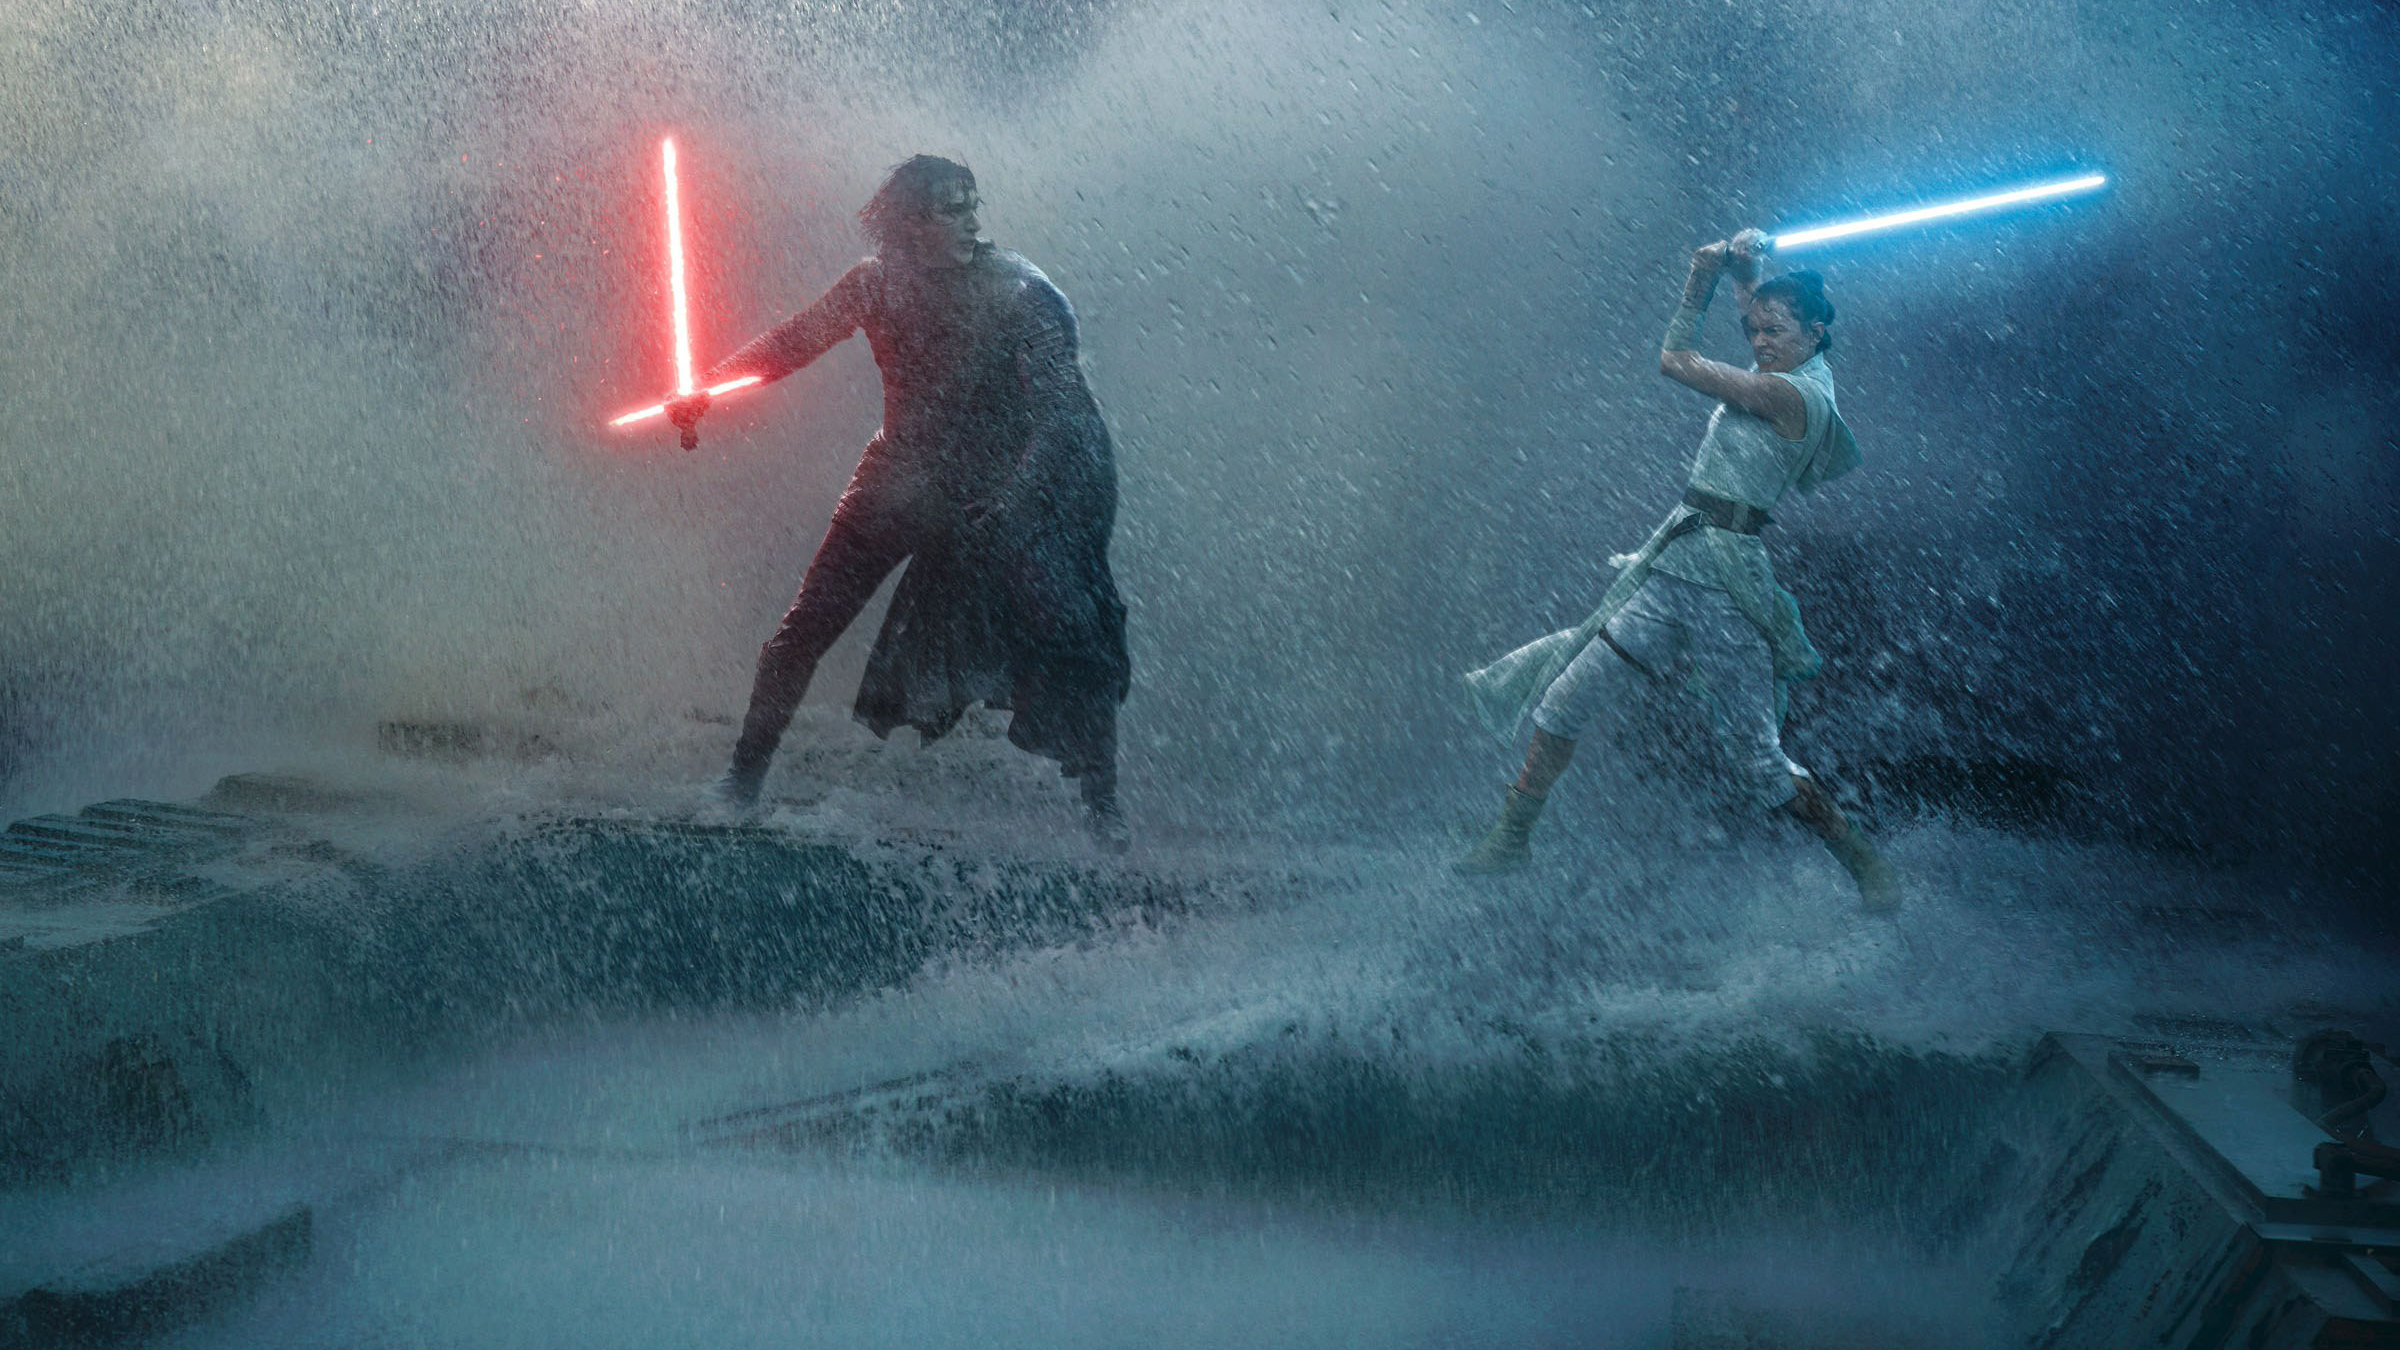 Rey Vs Kylo Ren Star Wars The Rise Of Skywalker Hd Movies 4k Wallpapers Images Backgrounds Photos And Pictures